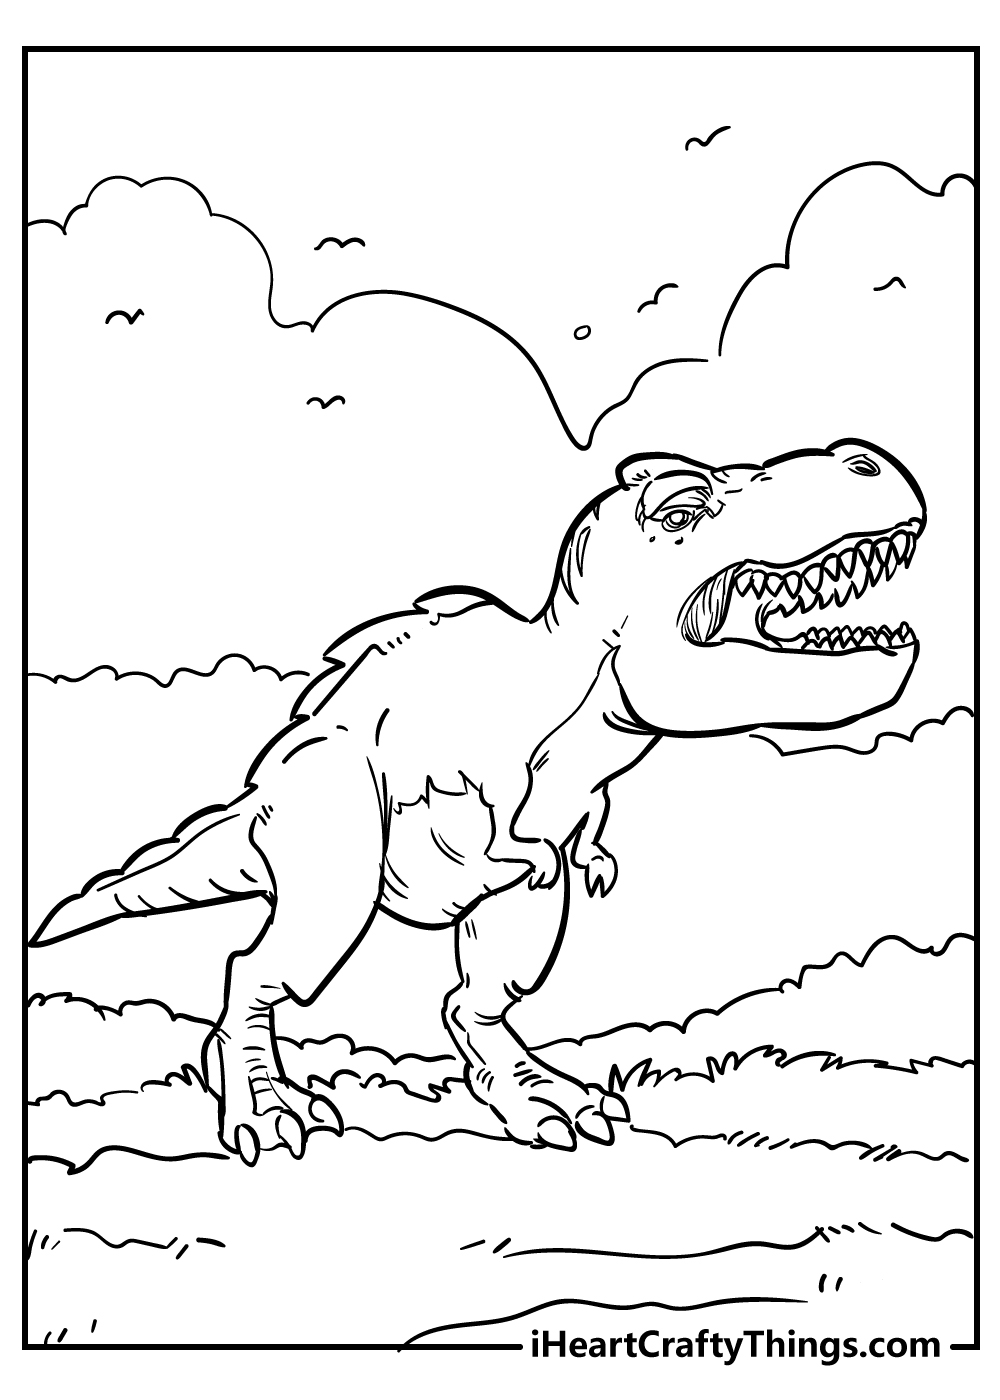 jurassic park tyrannosaurus coloring pages for adults free printable